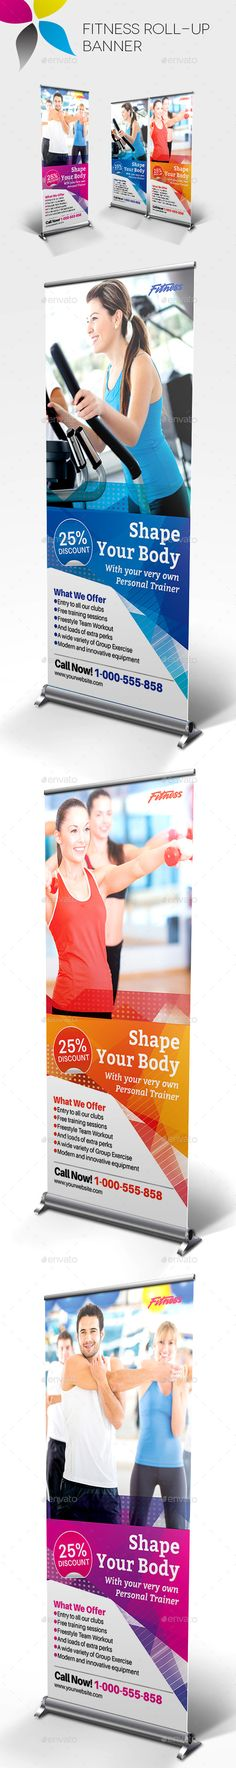 Fitness Roll-Up Banner - Signage Print Templates Banner Shapes, Pop Up Banner, Store Signage, Event Signage, Letterhead Template, Brochure Template, Graphic Design Templates, Print Templates, Banner Template